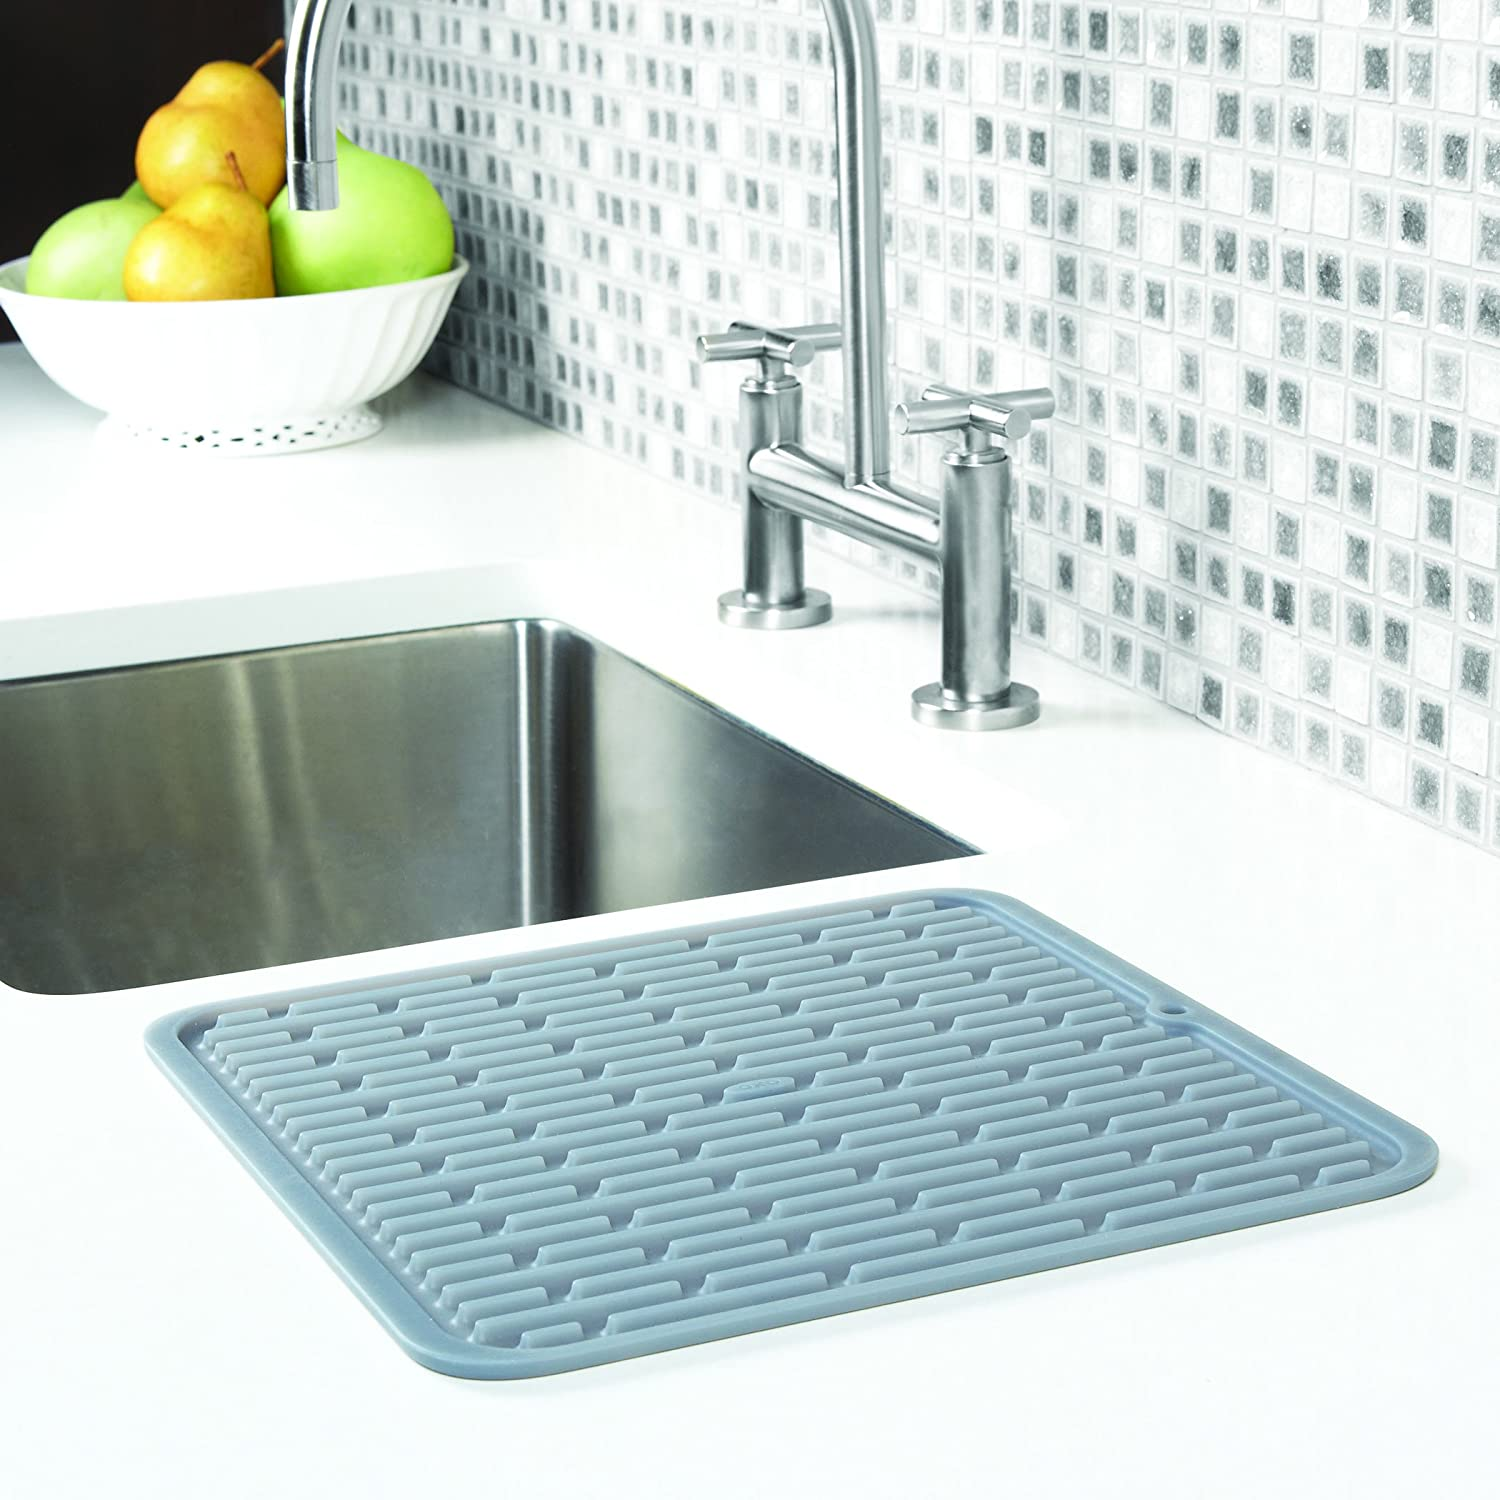 Amazon OXO Good Grips Silicone Drying Mat Square Dish Racks